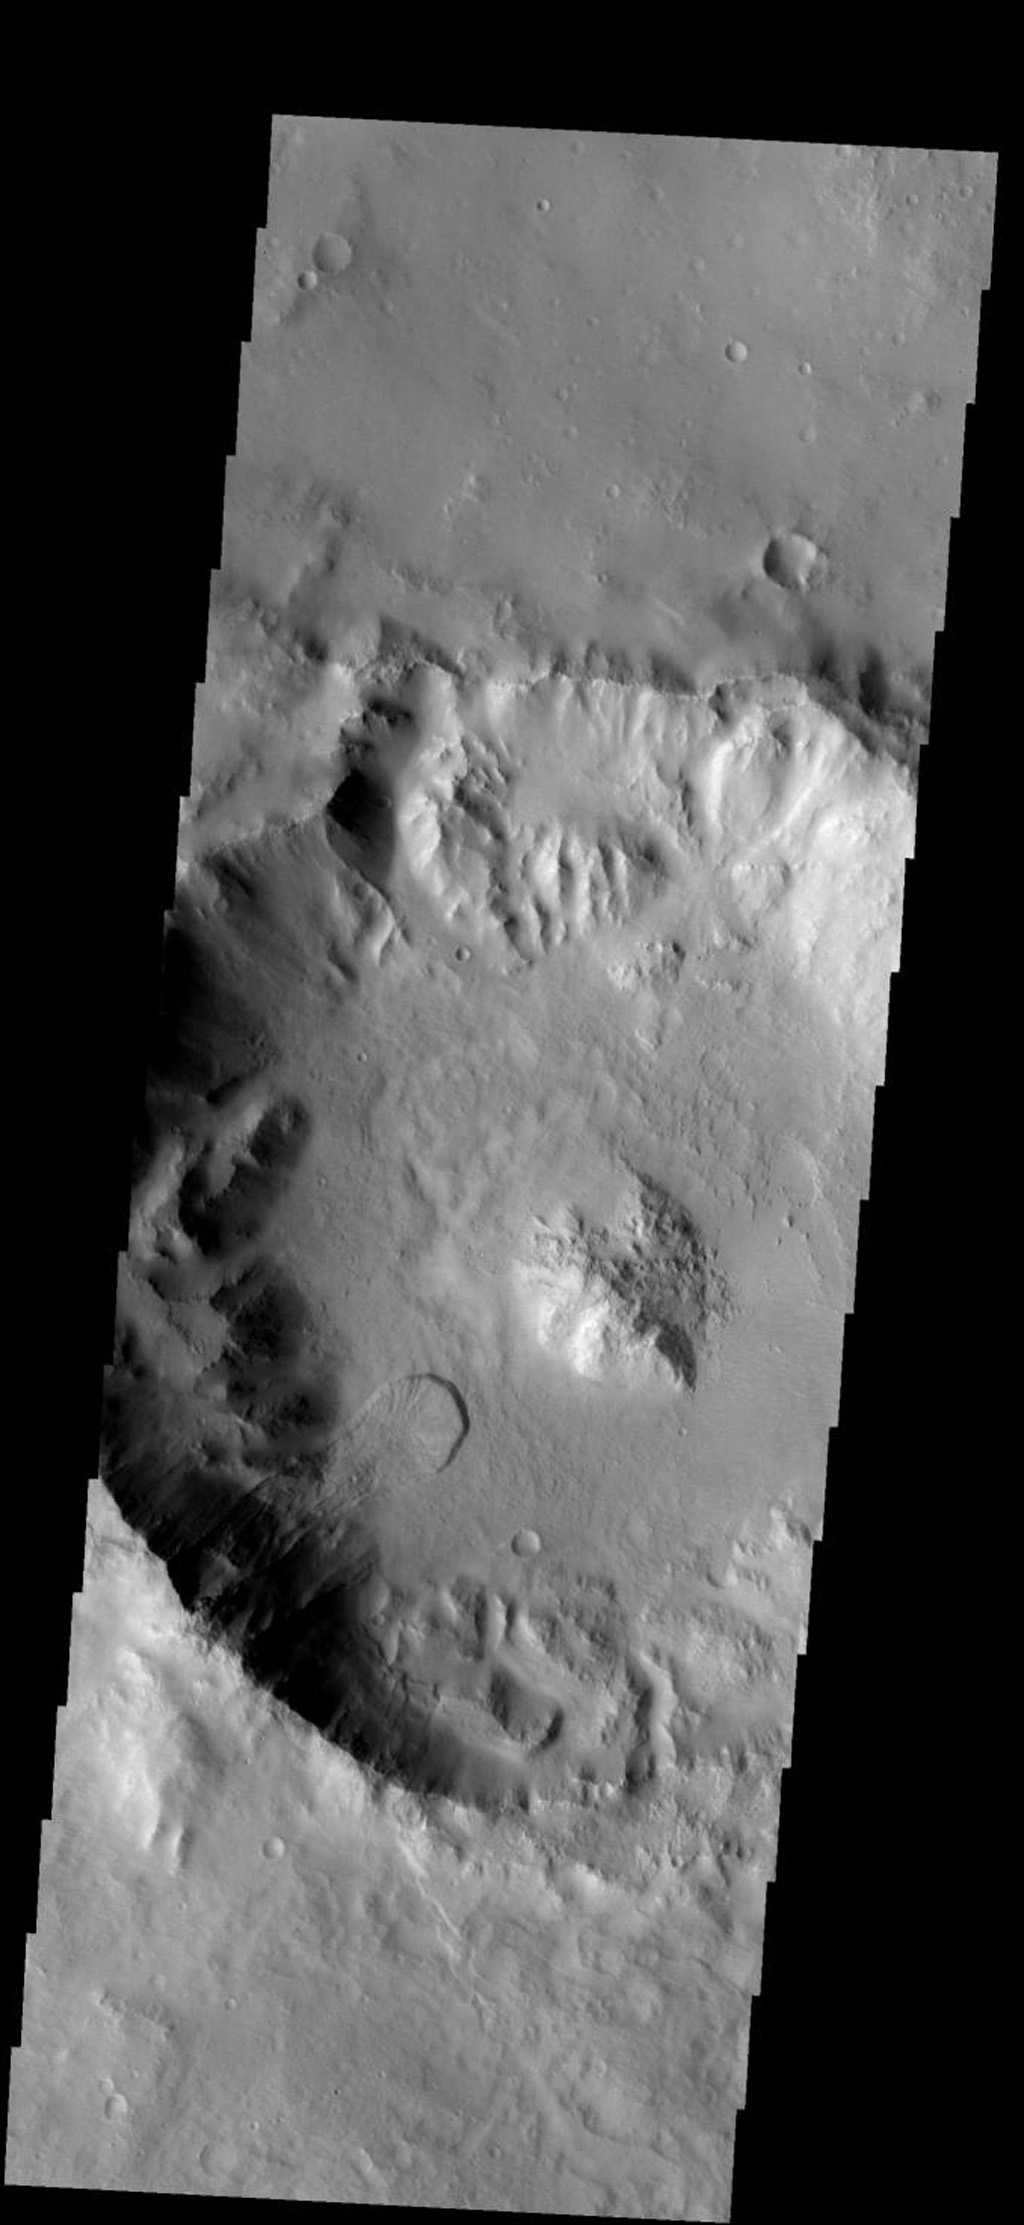 This landslide occurs in an unnamed crater on Mars southeast of Millochau Crater as seen by NASA's 2001 Mars Odyssey spacecraft.